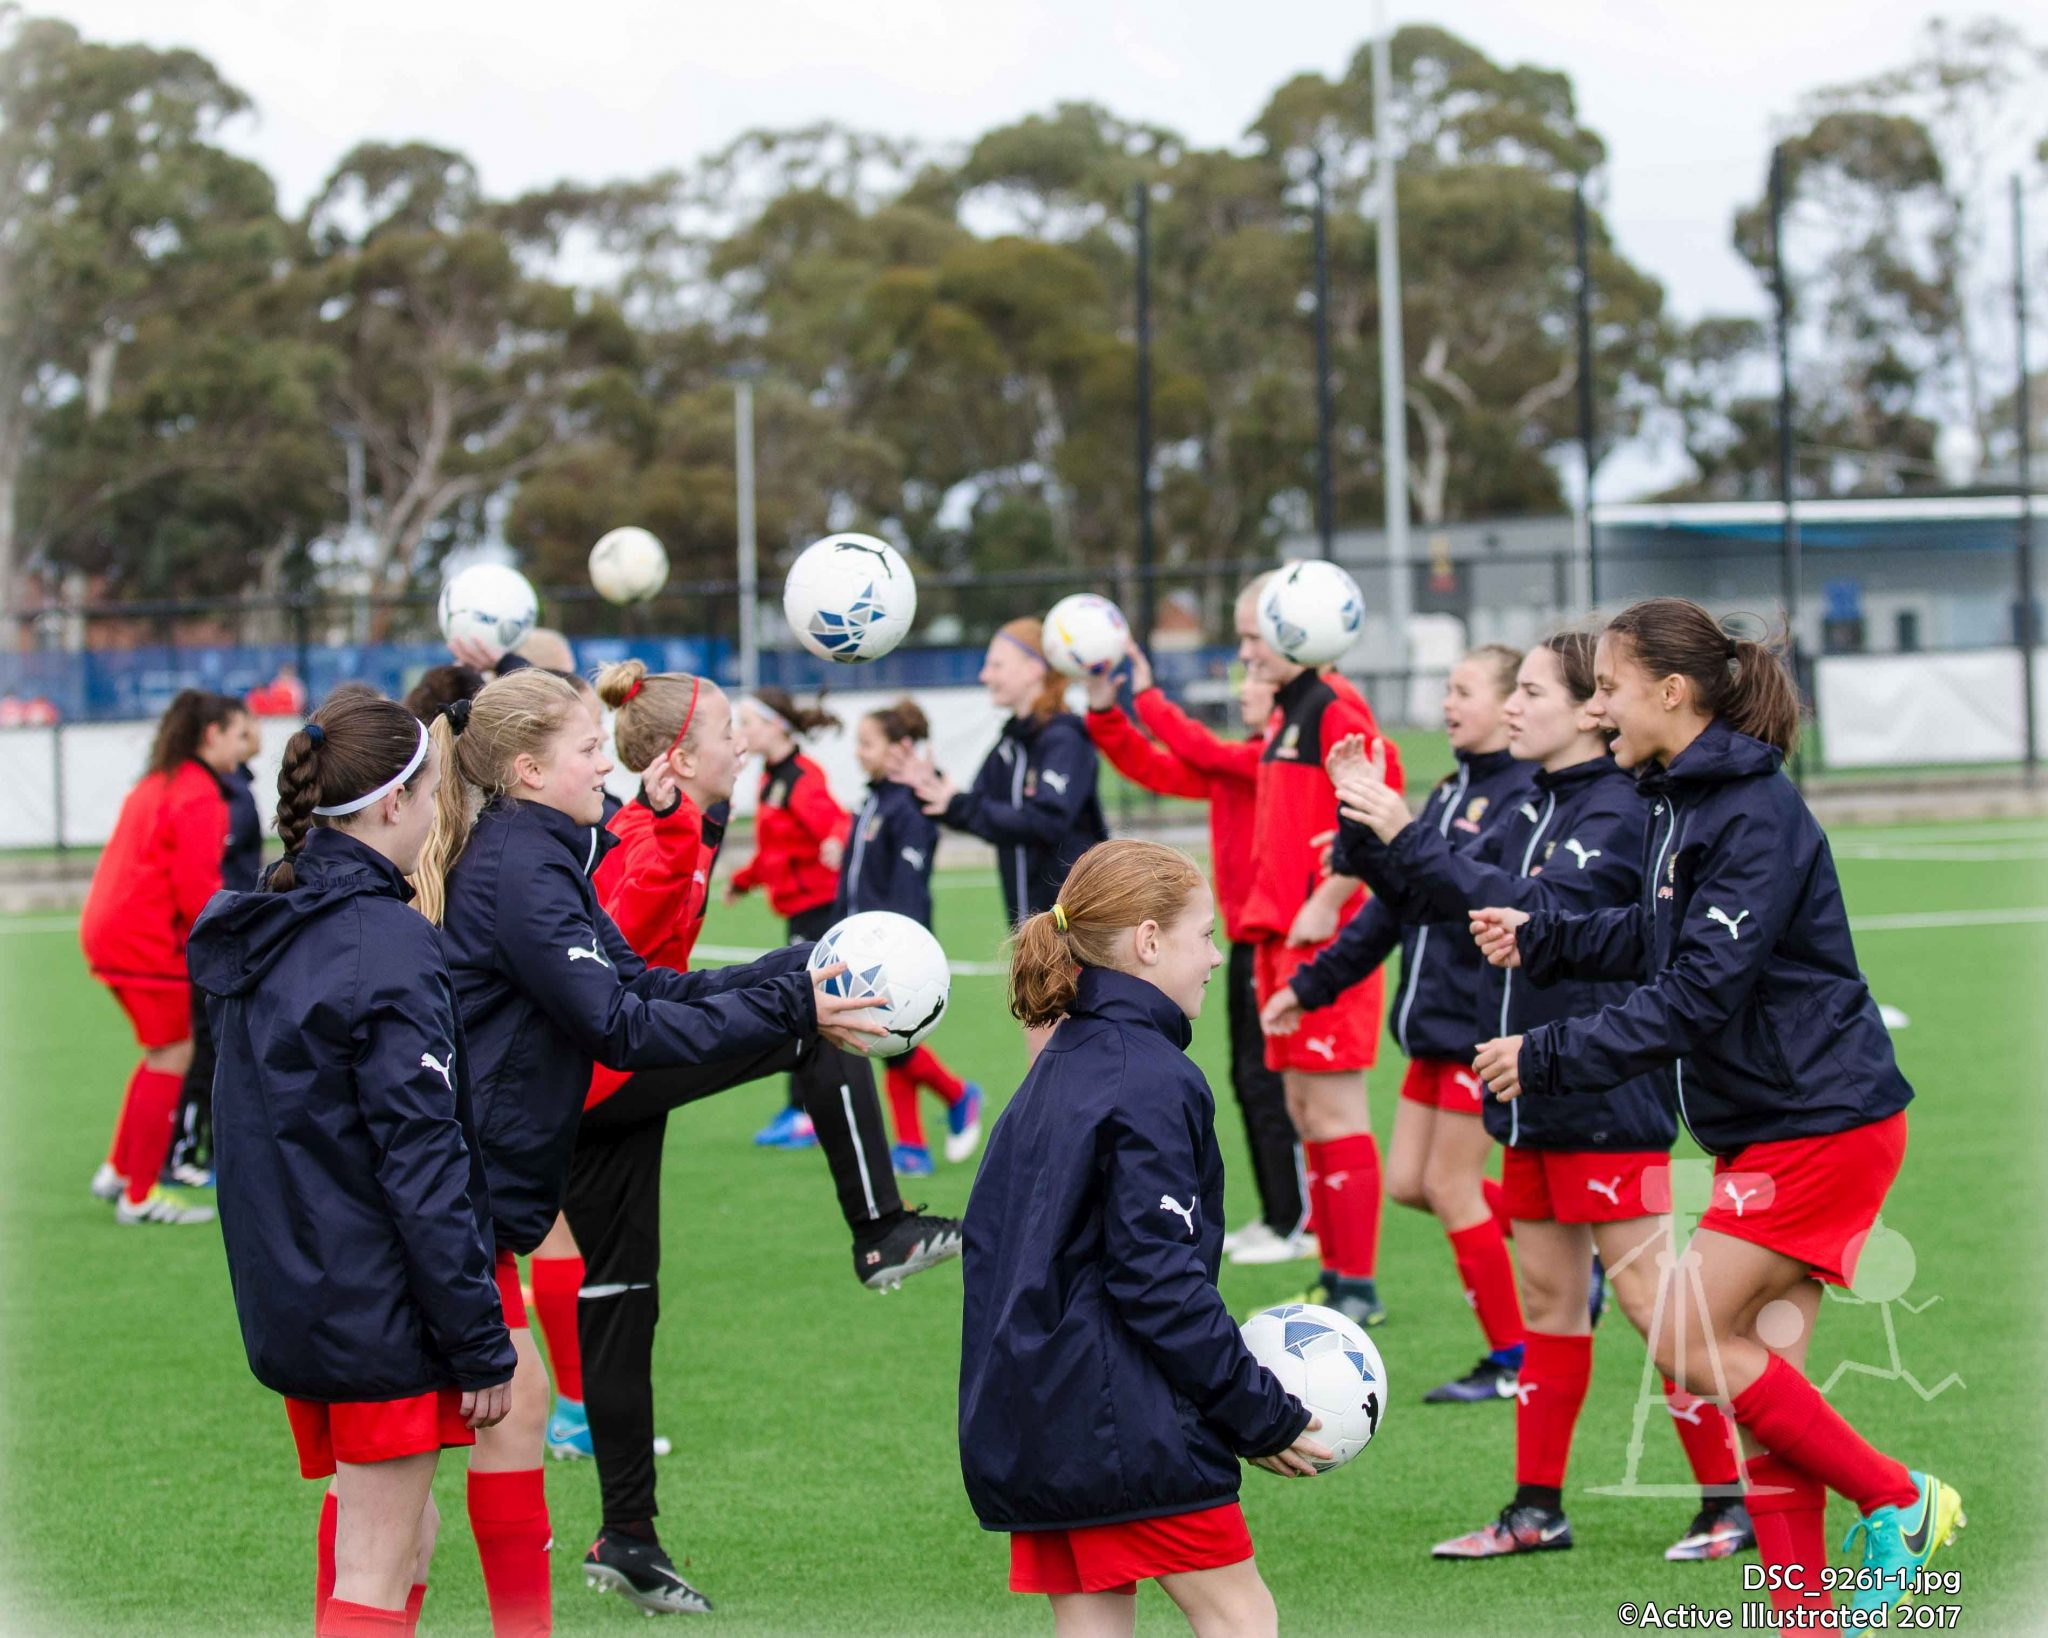 Game photos: FFSA U13 Girls v Fulham U17 Girls 28MAY17